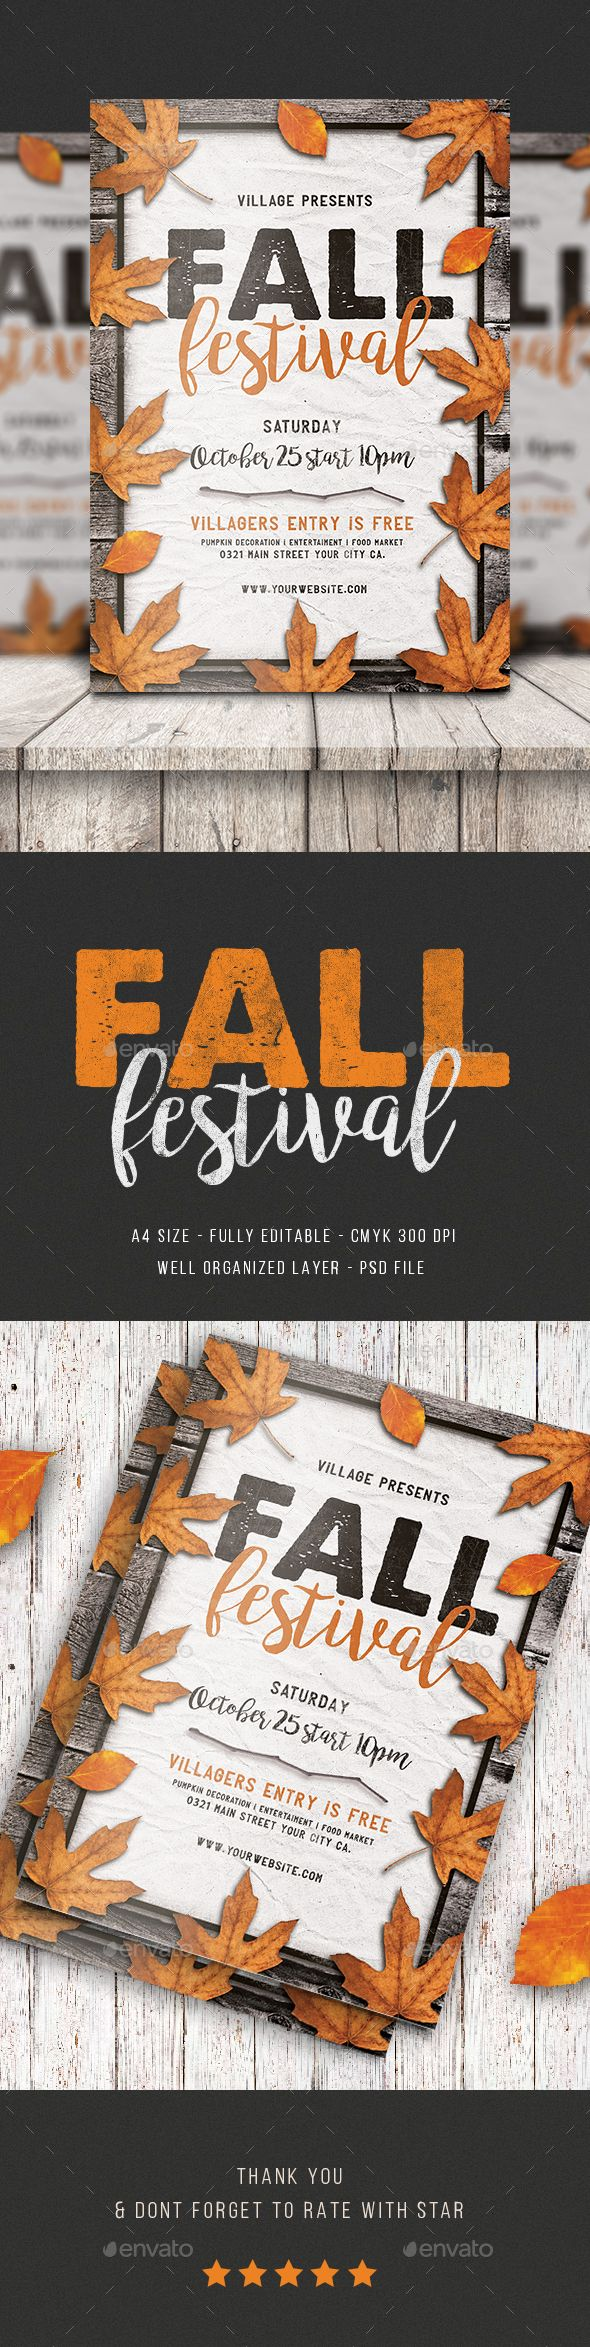 Fall Festival Flyer Design Template - Eventas Flyers Template PSD. Download here: https://graphicriver.net/item/fall-festival-flyer/17652574?ref=yinkira